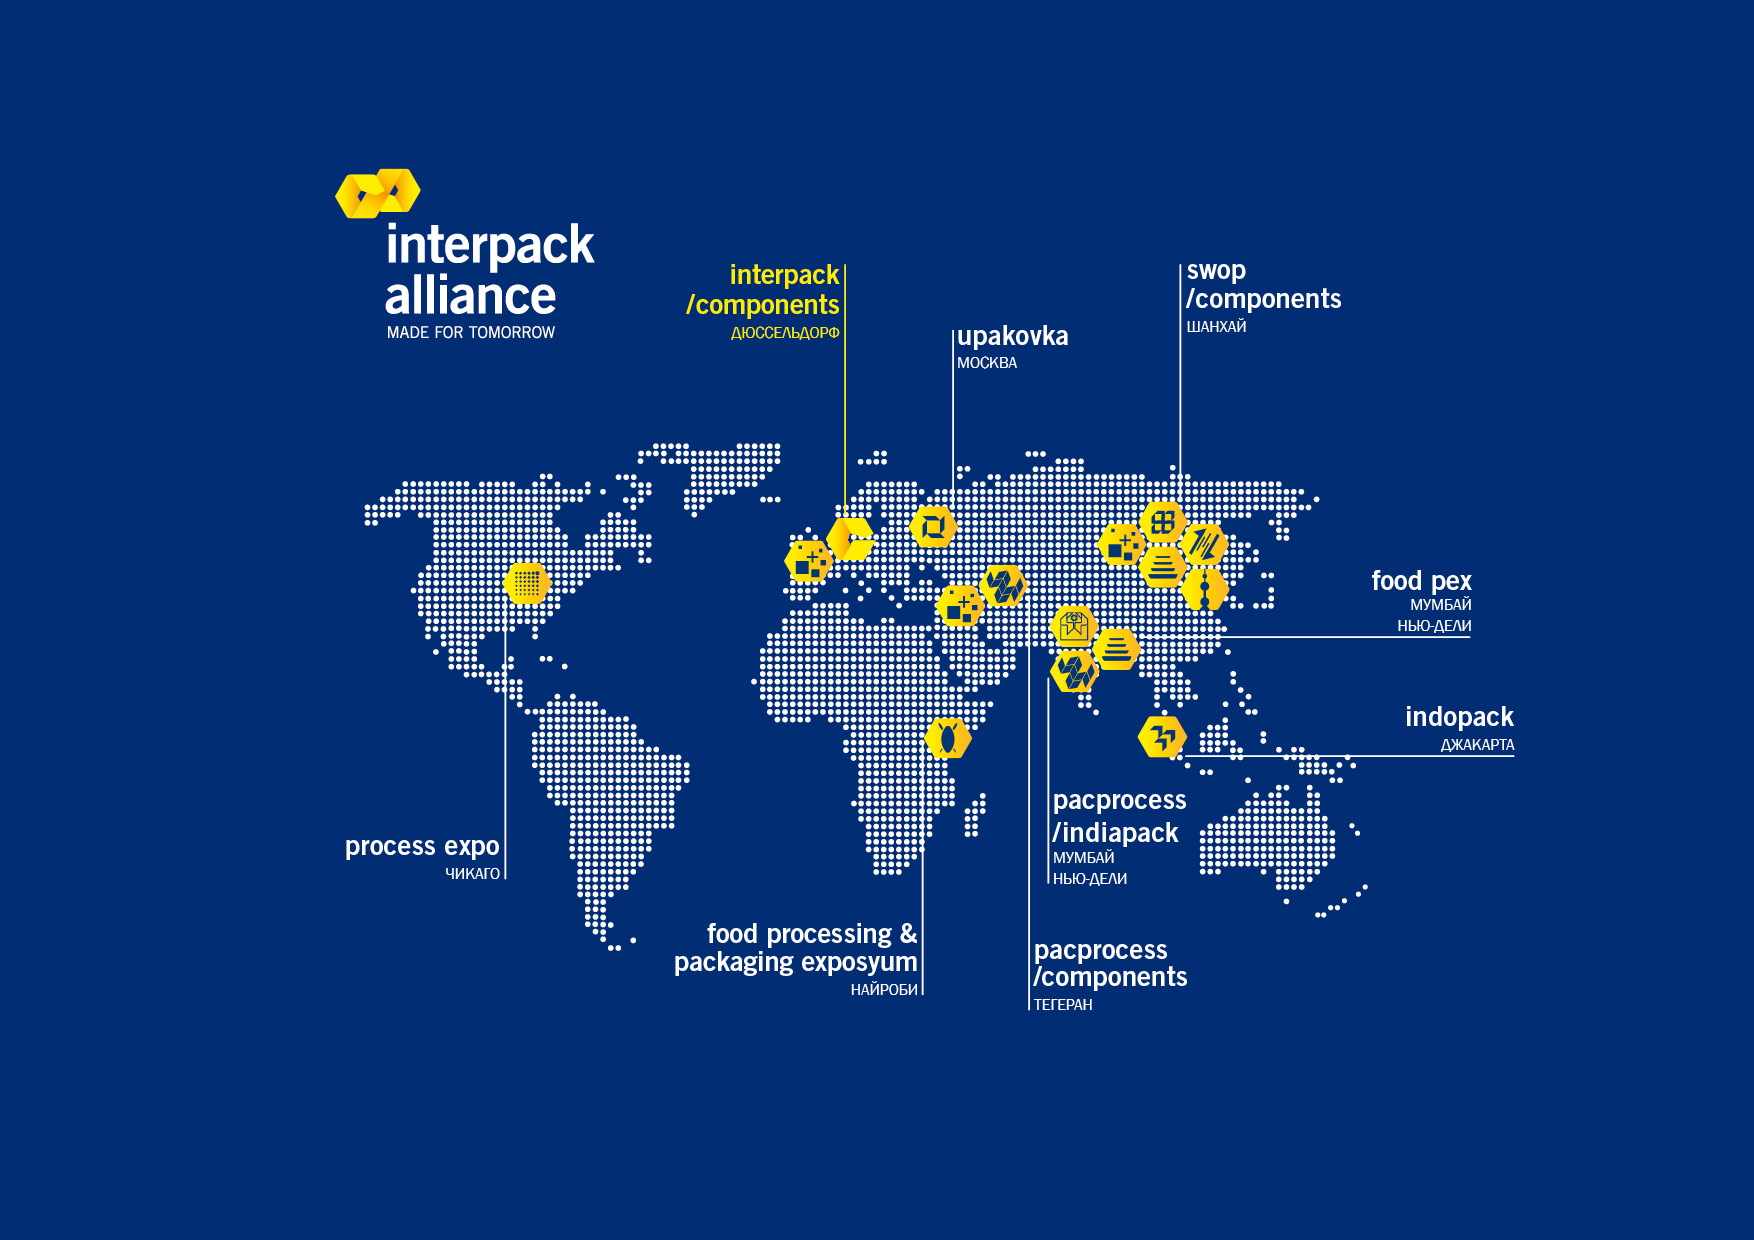 interpack alliance map